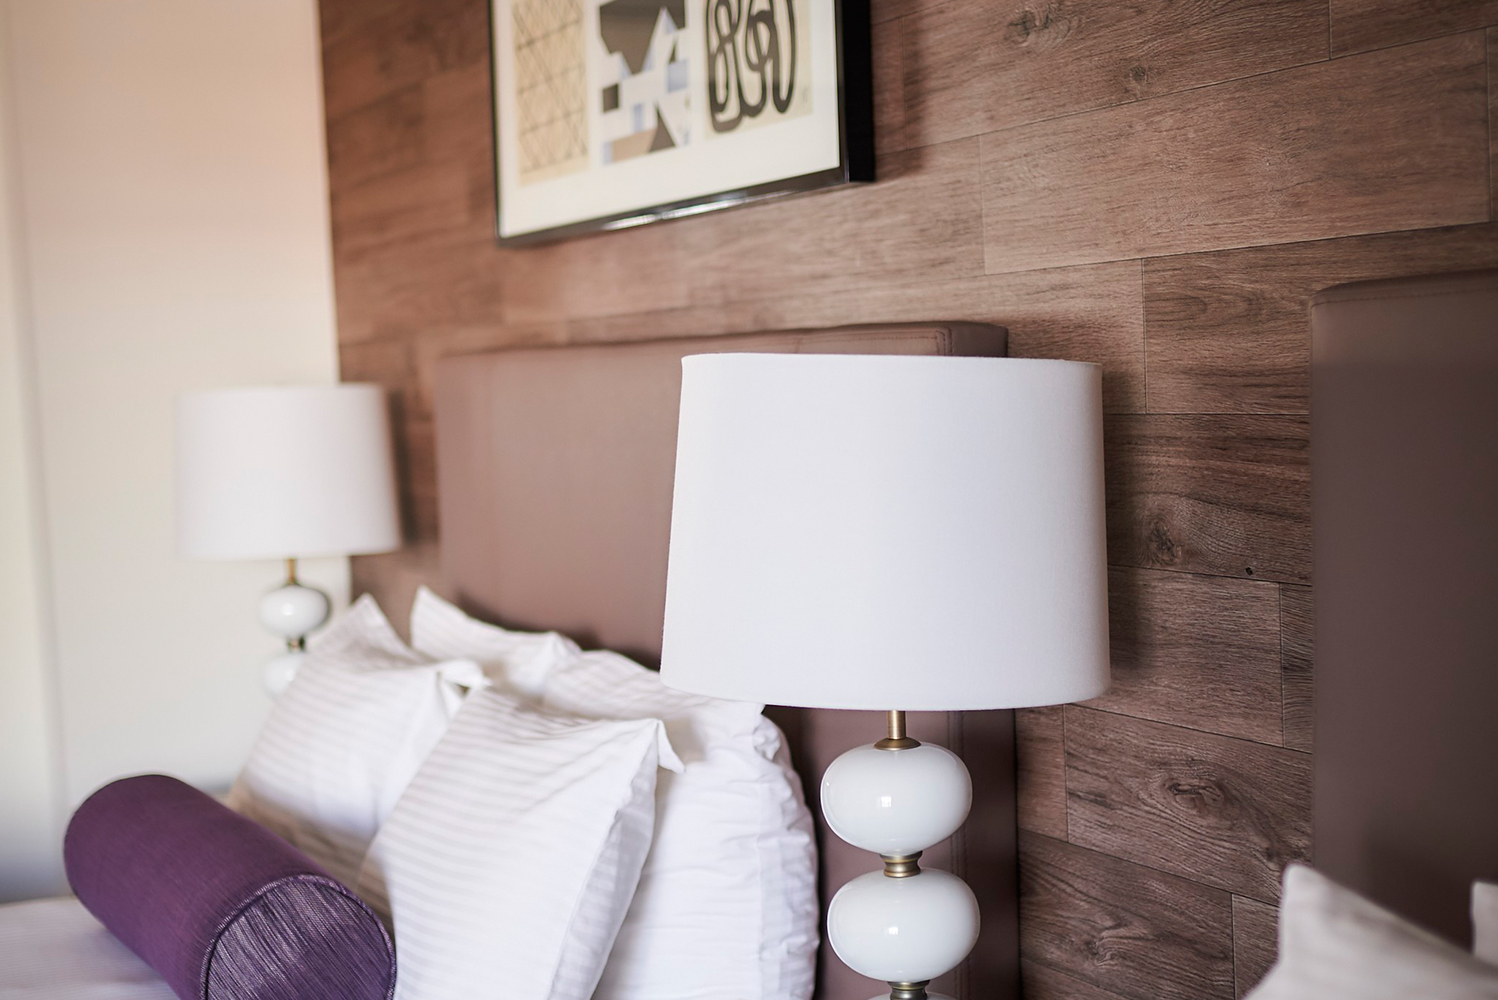 The rooms use natural textures, and reflect the rustic characteristics of the Rocky Mountains and the state of Colorado.